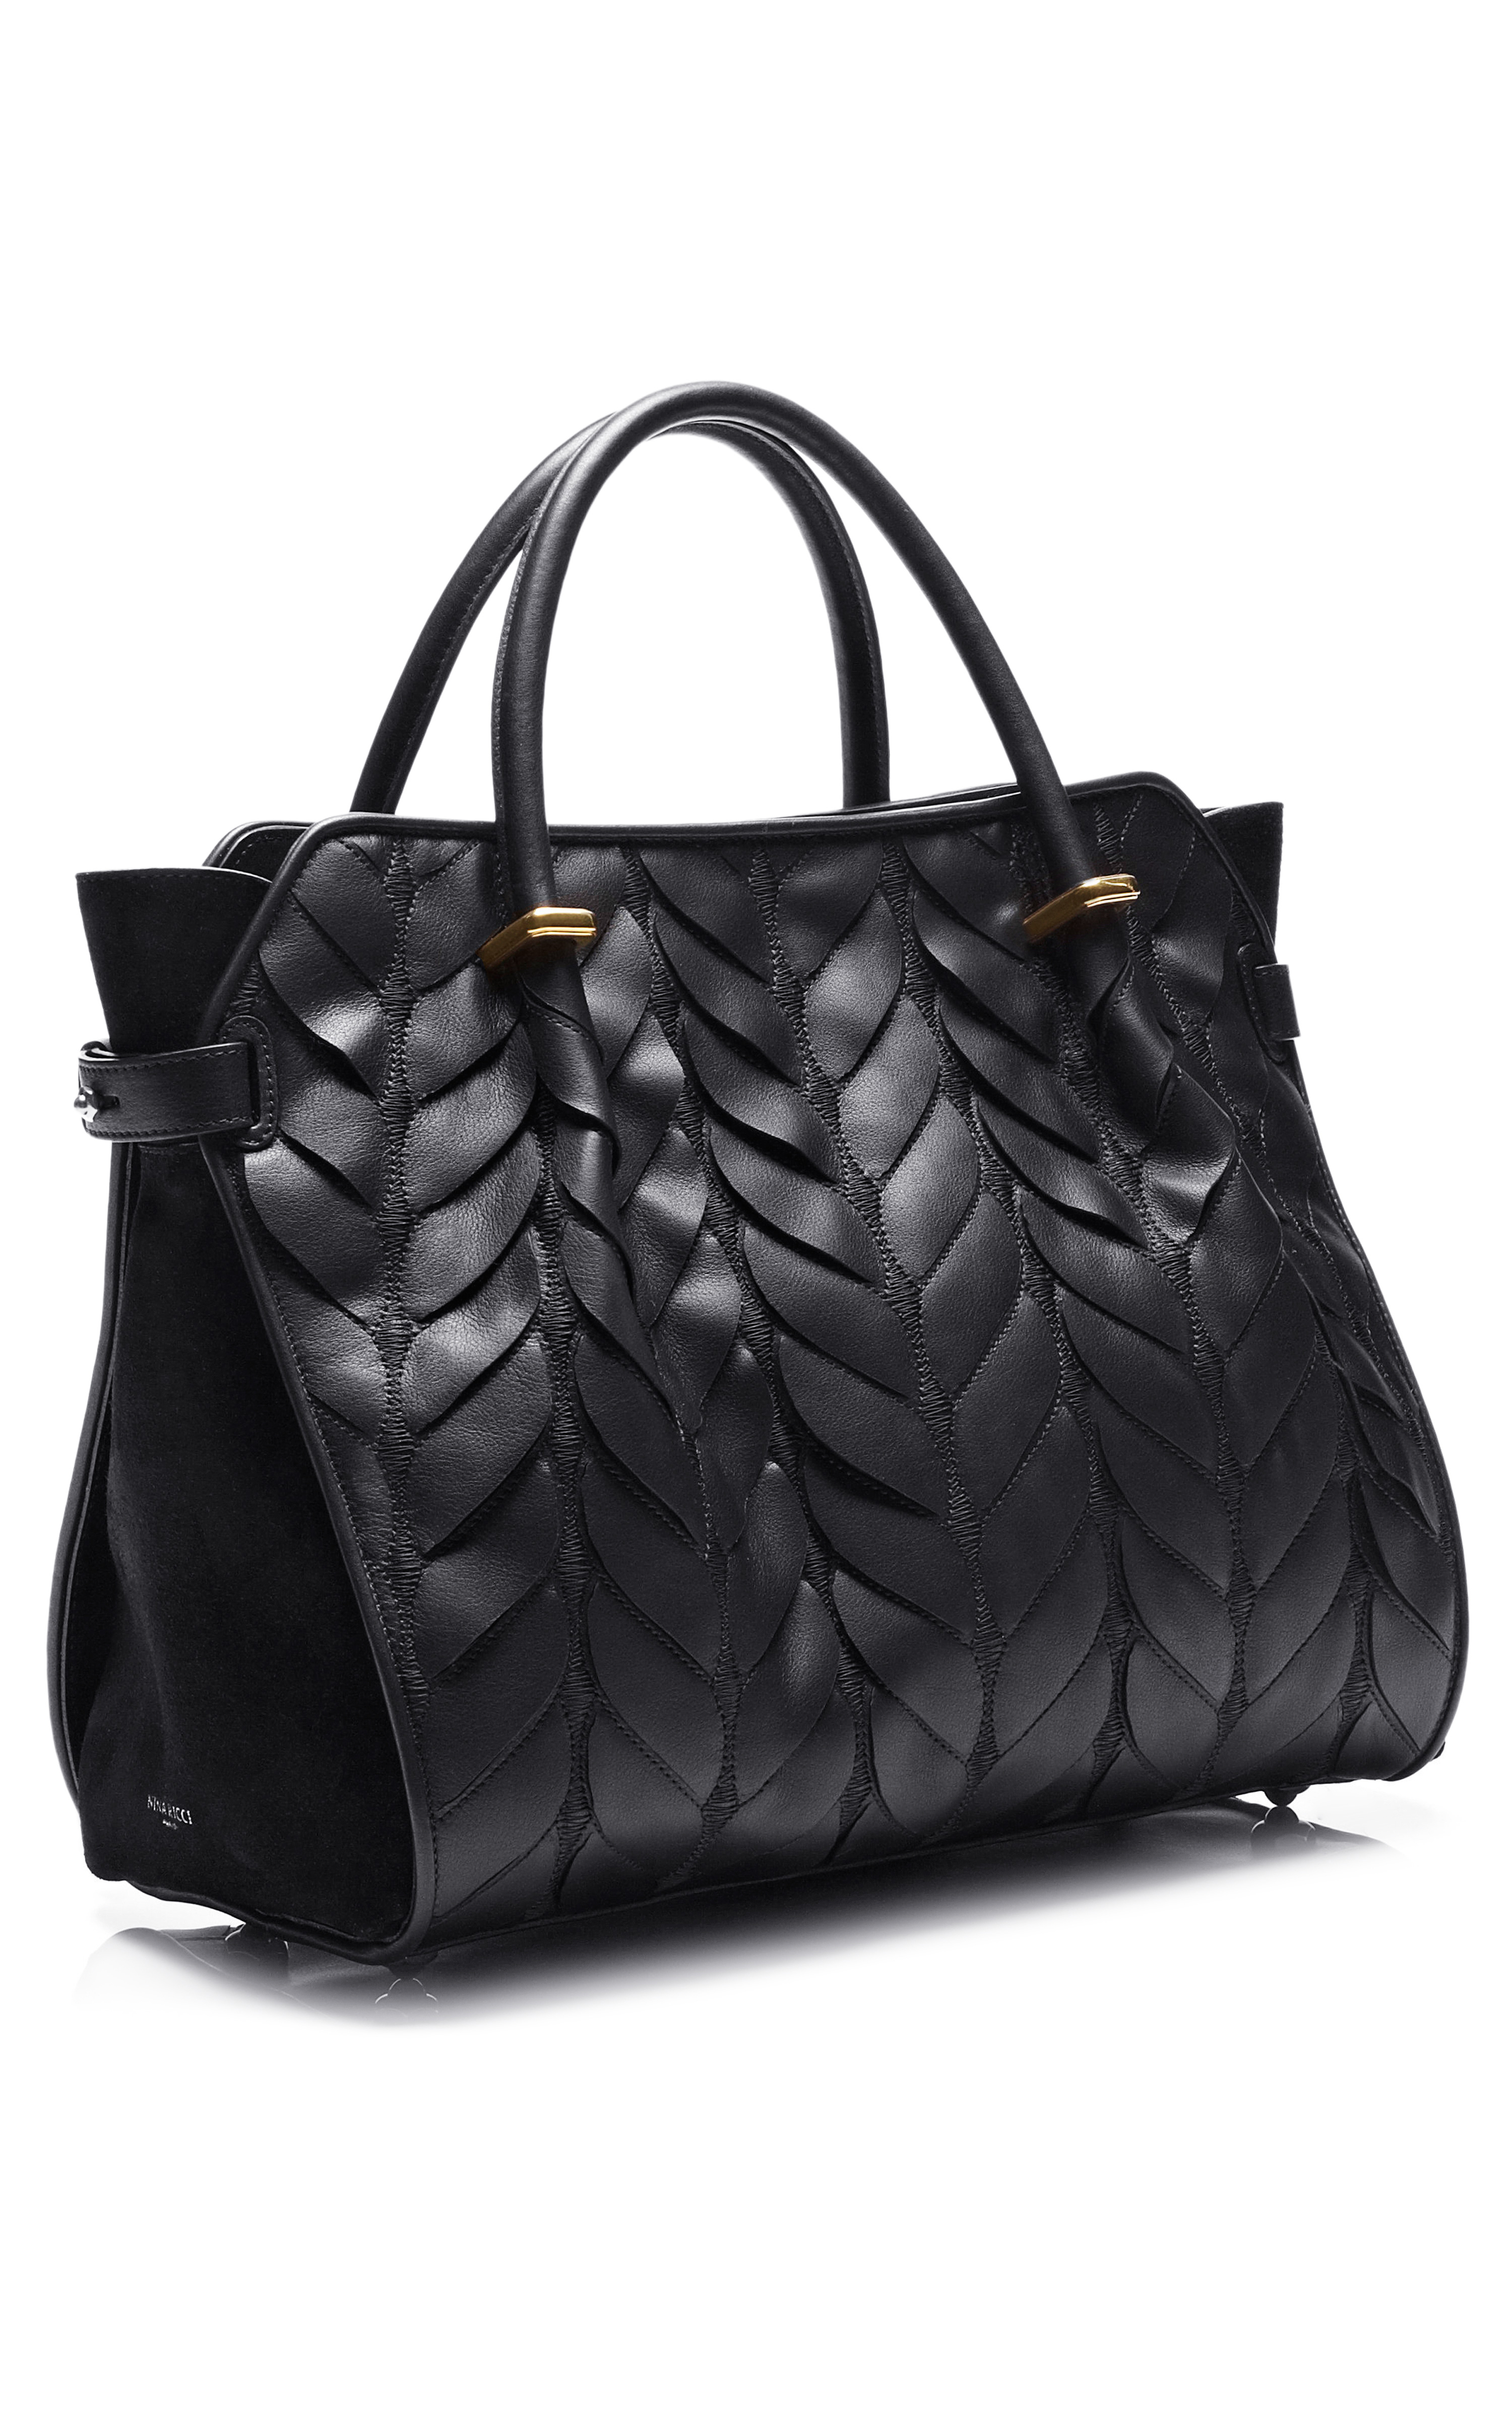 b3ce7f1e75 Lyst - Nina Ricci Quilted Calfskin Marche Small Bag in Black